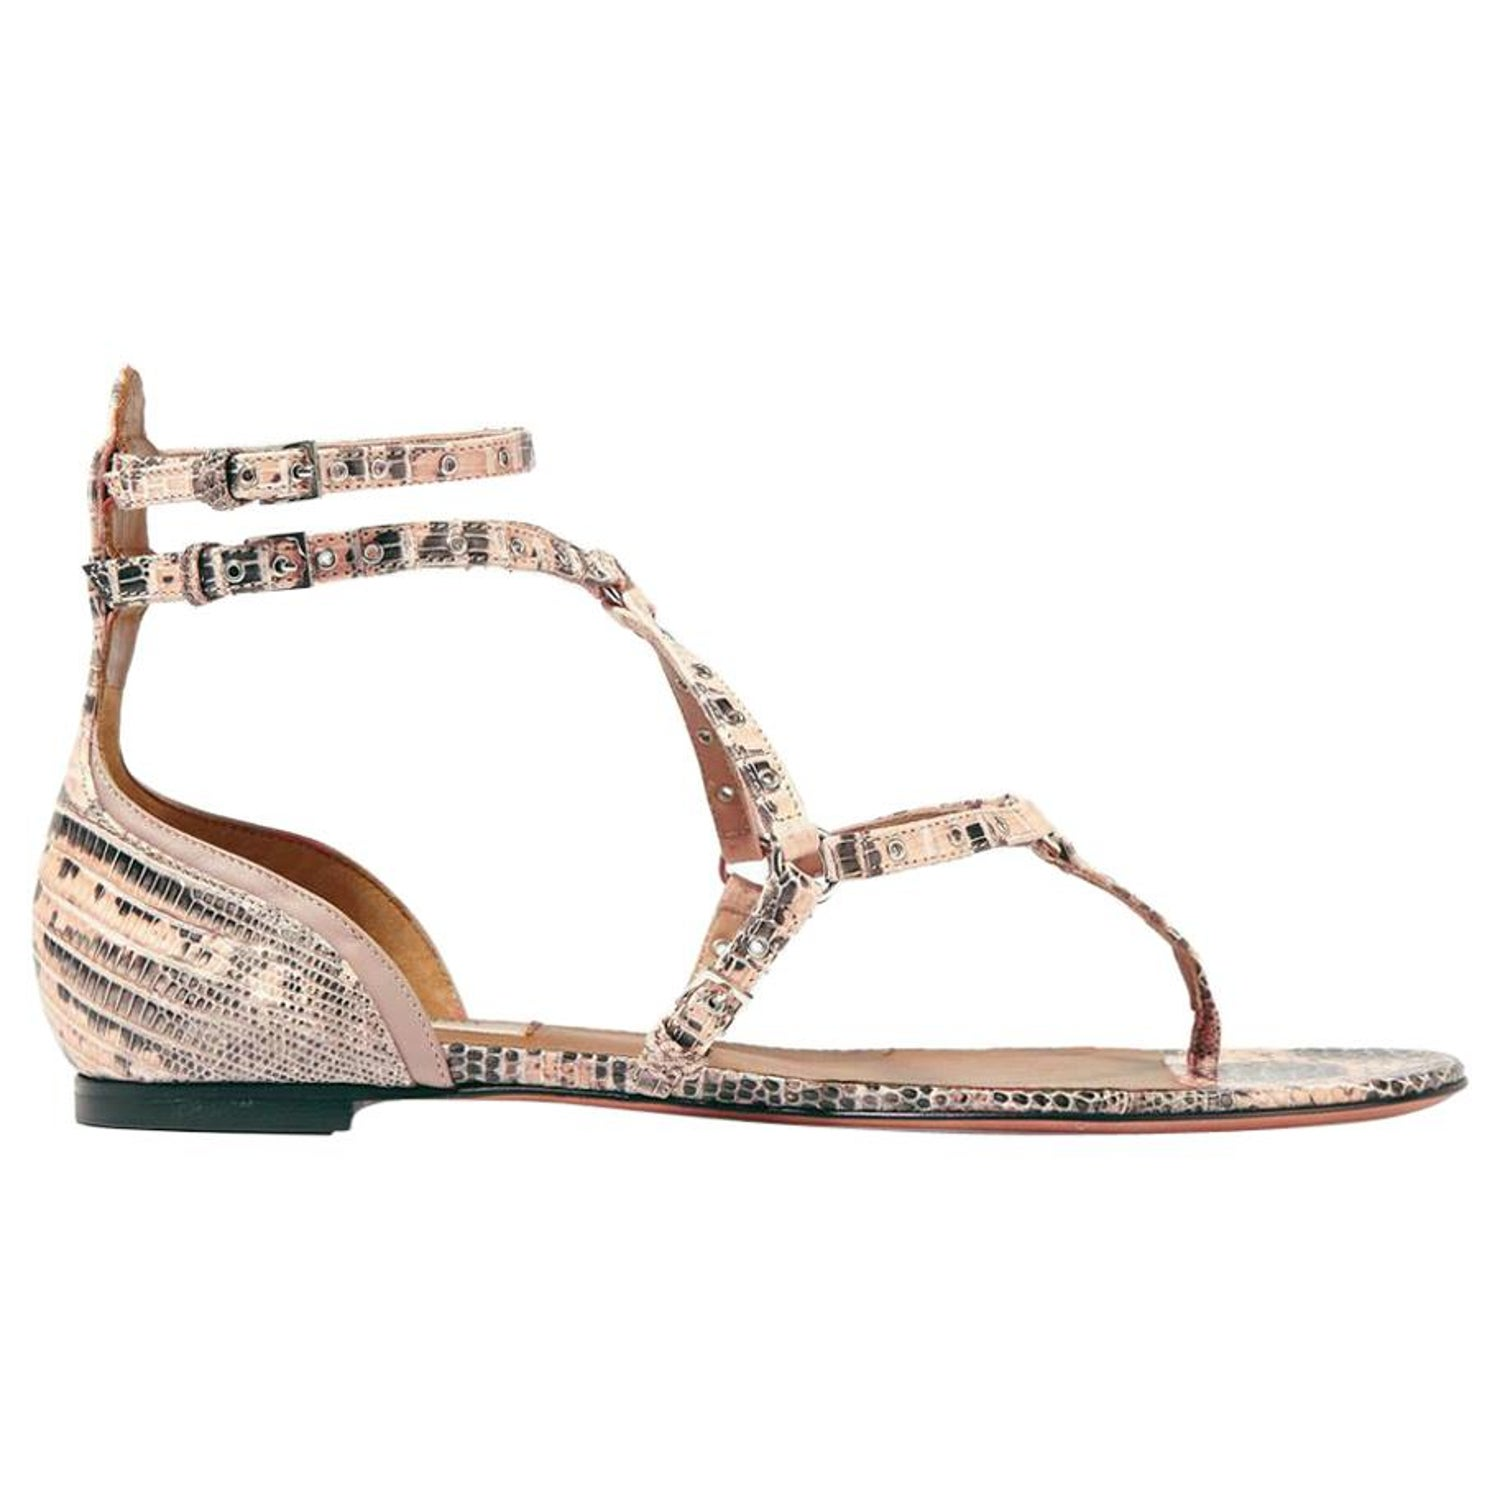 13059abe5cbc Valentino Love Latch Eyelet Embellished Lizard Sandals For Sale at 1stdibs